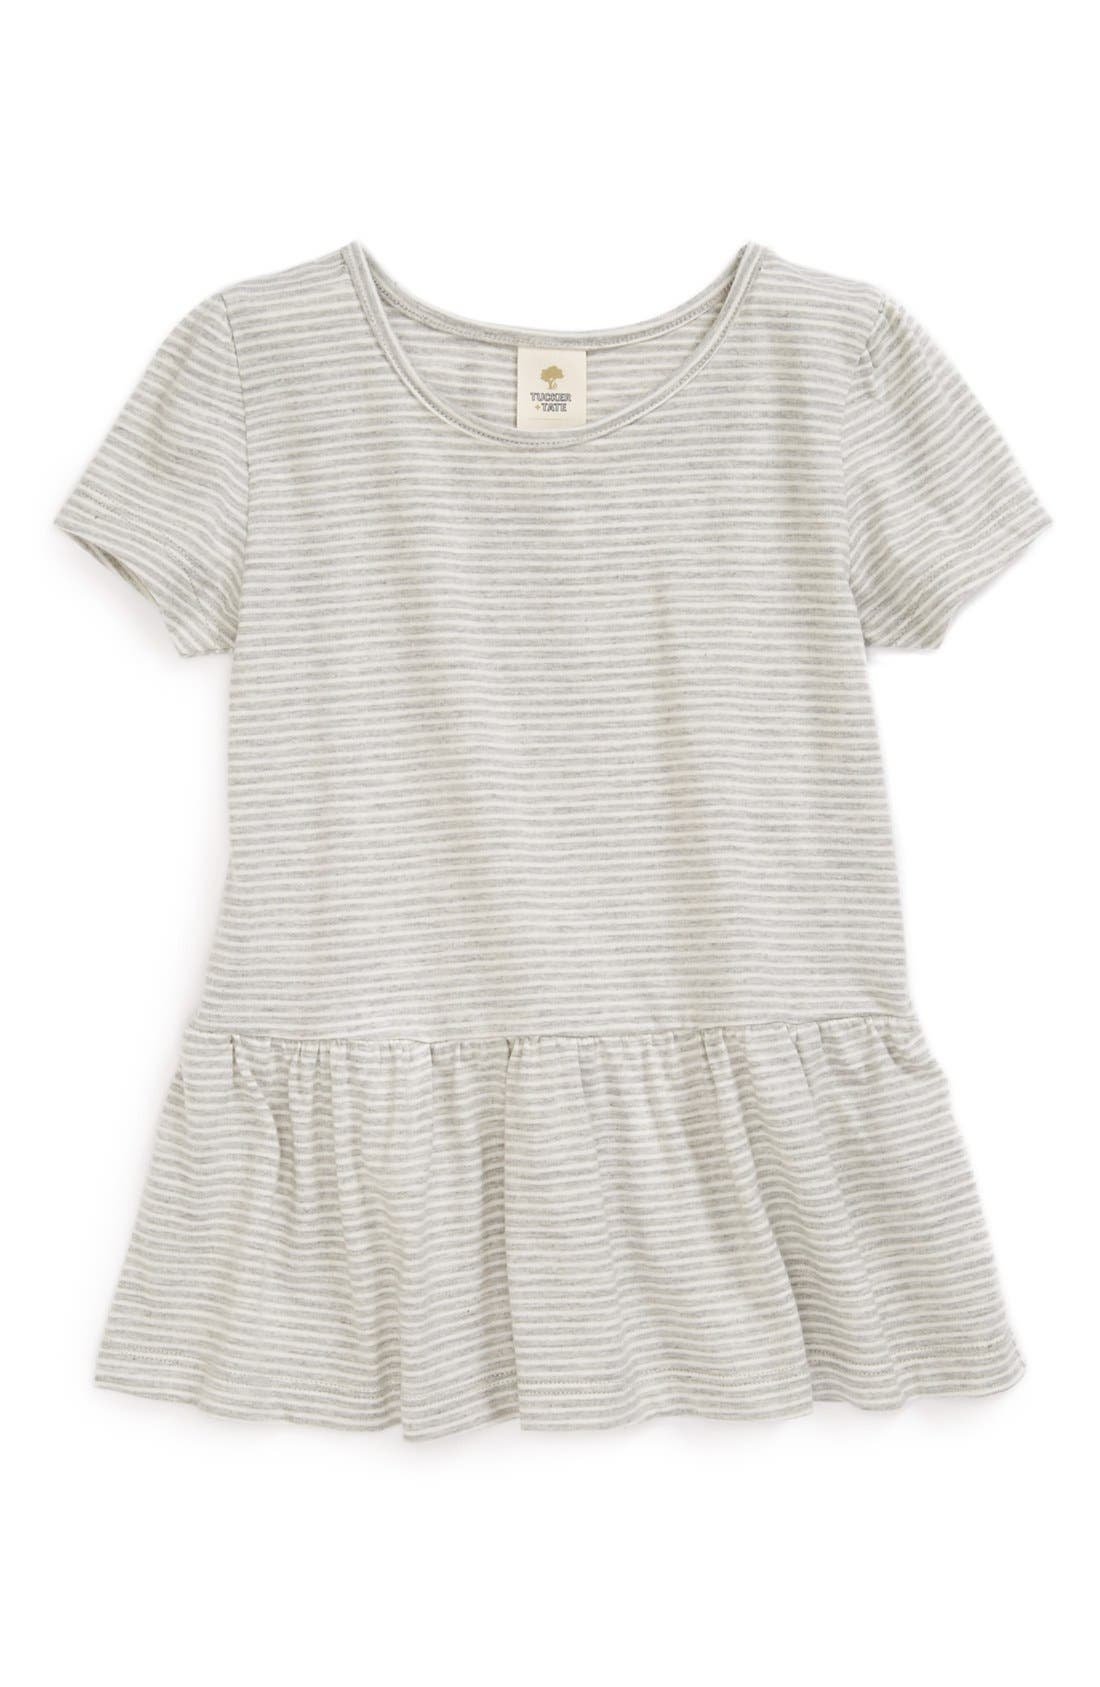 Alternate Image 1 Selected - Tucker + Tate 'Shania' Knit Tunic (Toddler Girls)